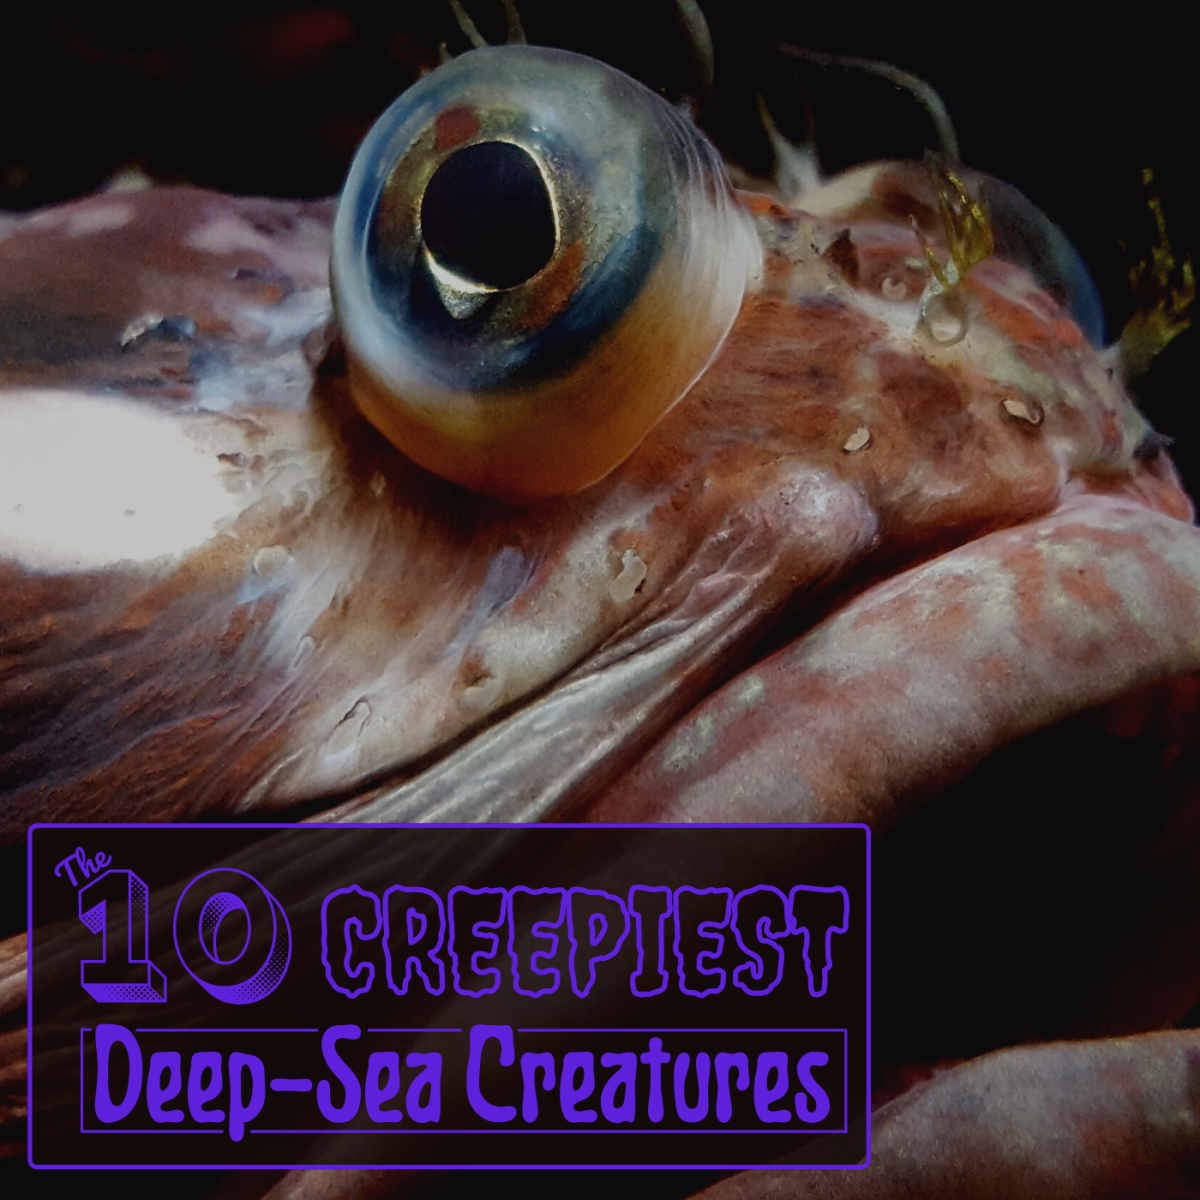 The deepest parts of the earth's oceans are some of the least explored and most alien landscapes on the planet.